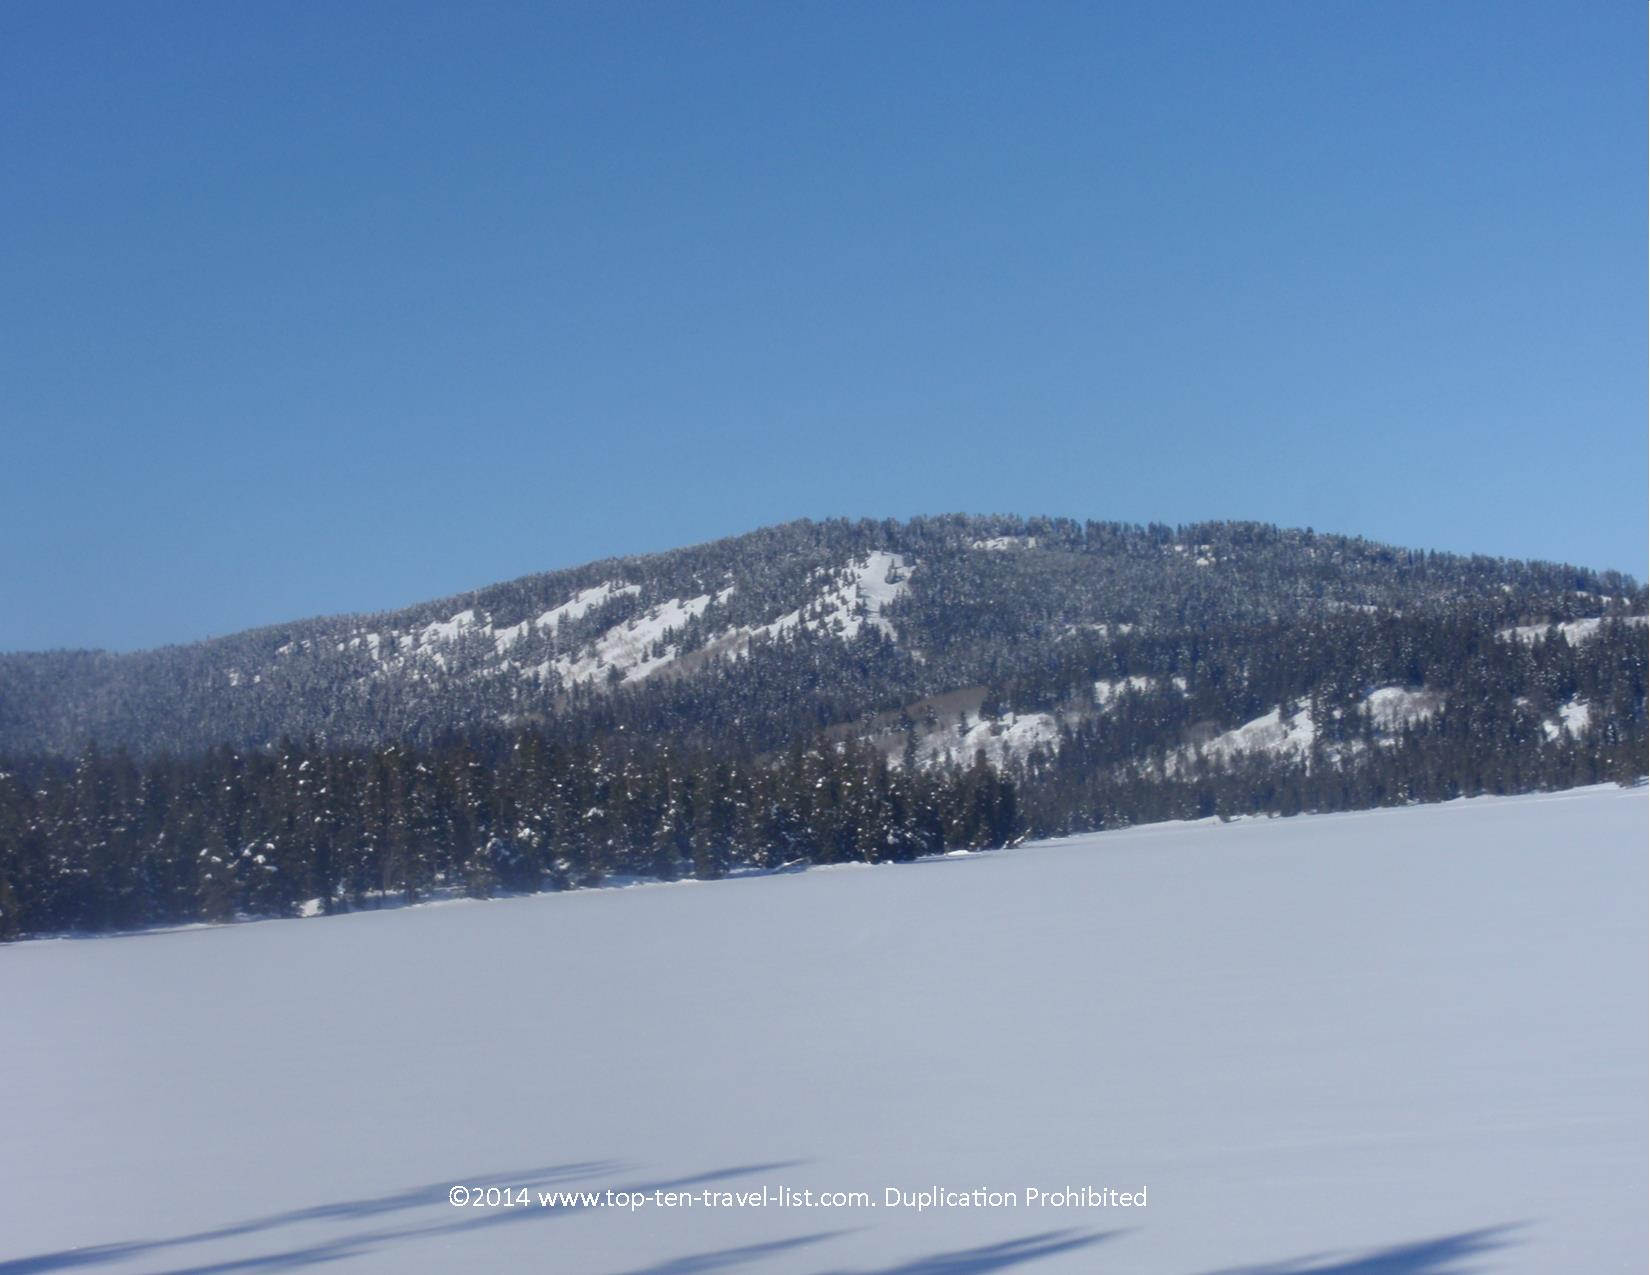 Winter scenery at Harriman State Park in Southern Idaho